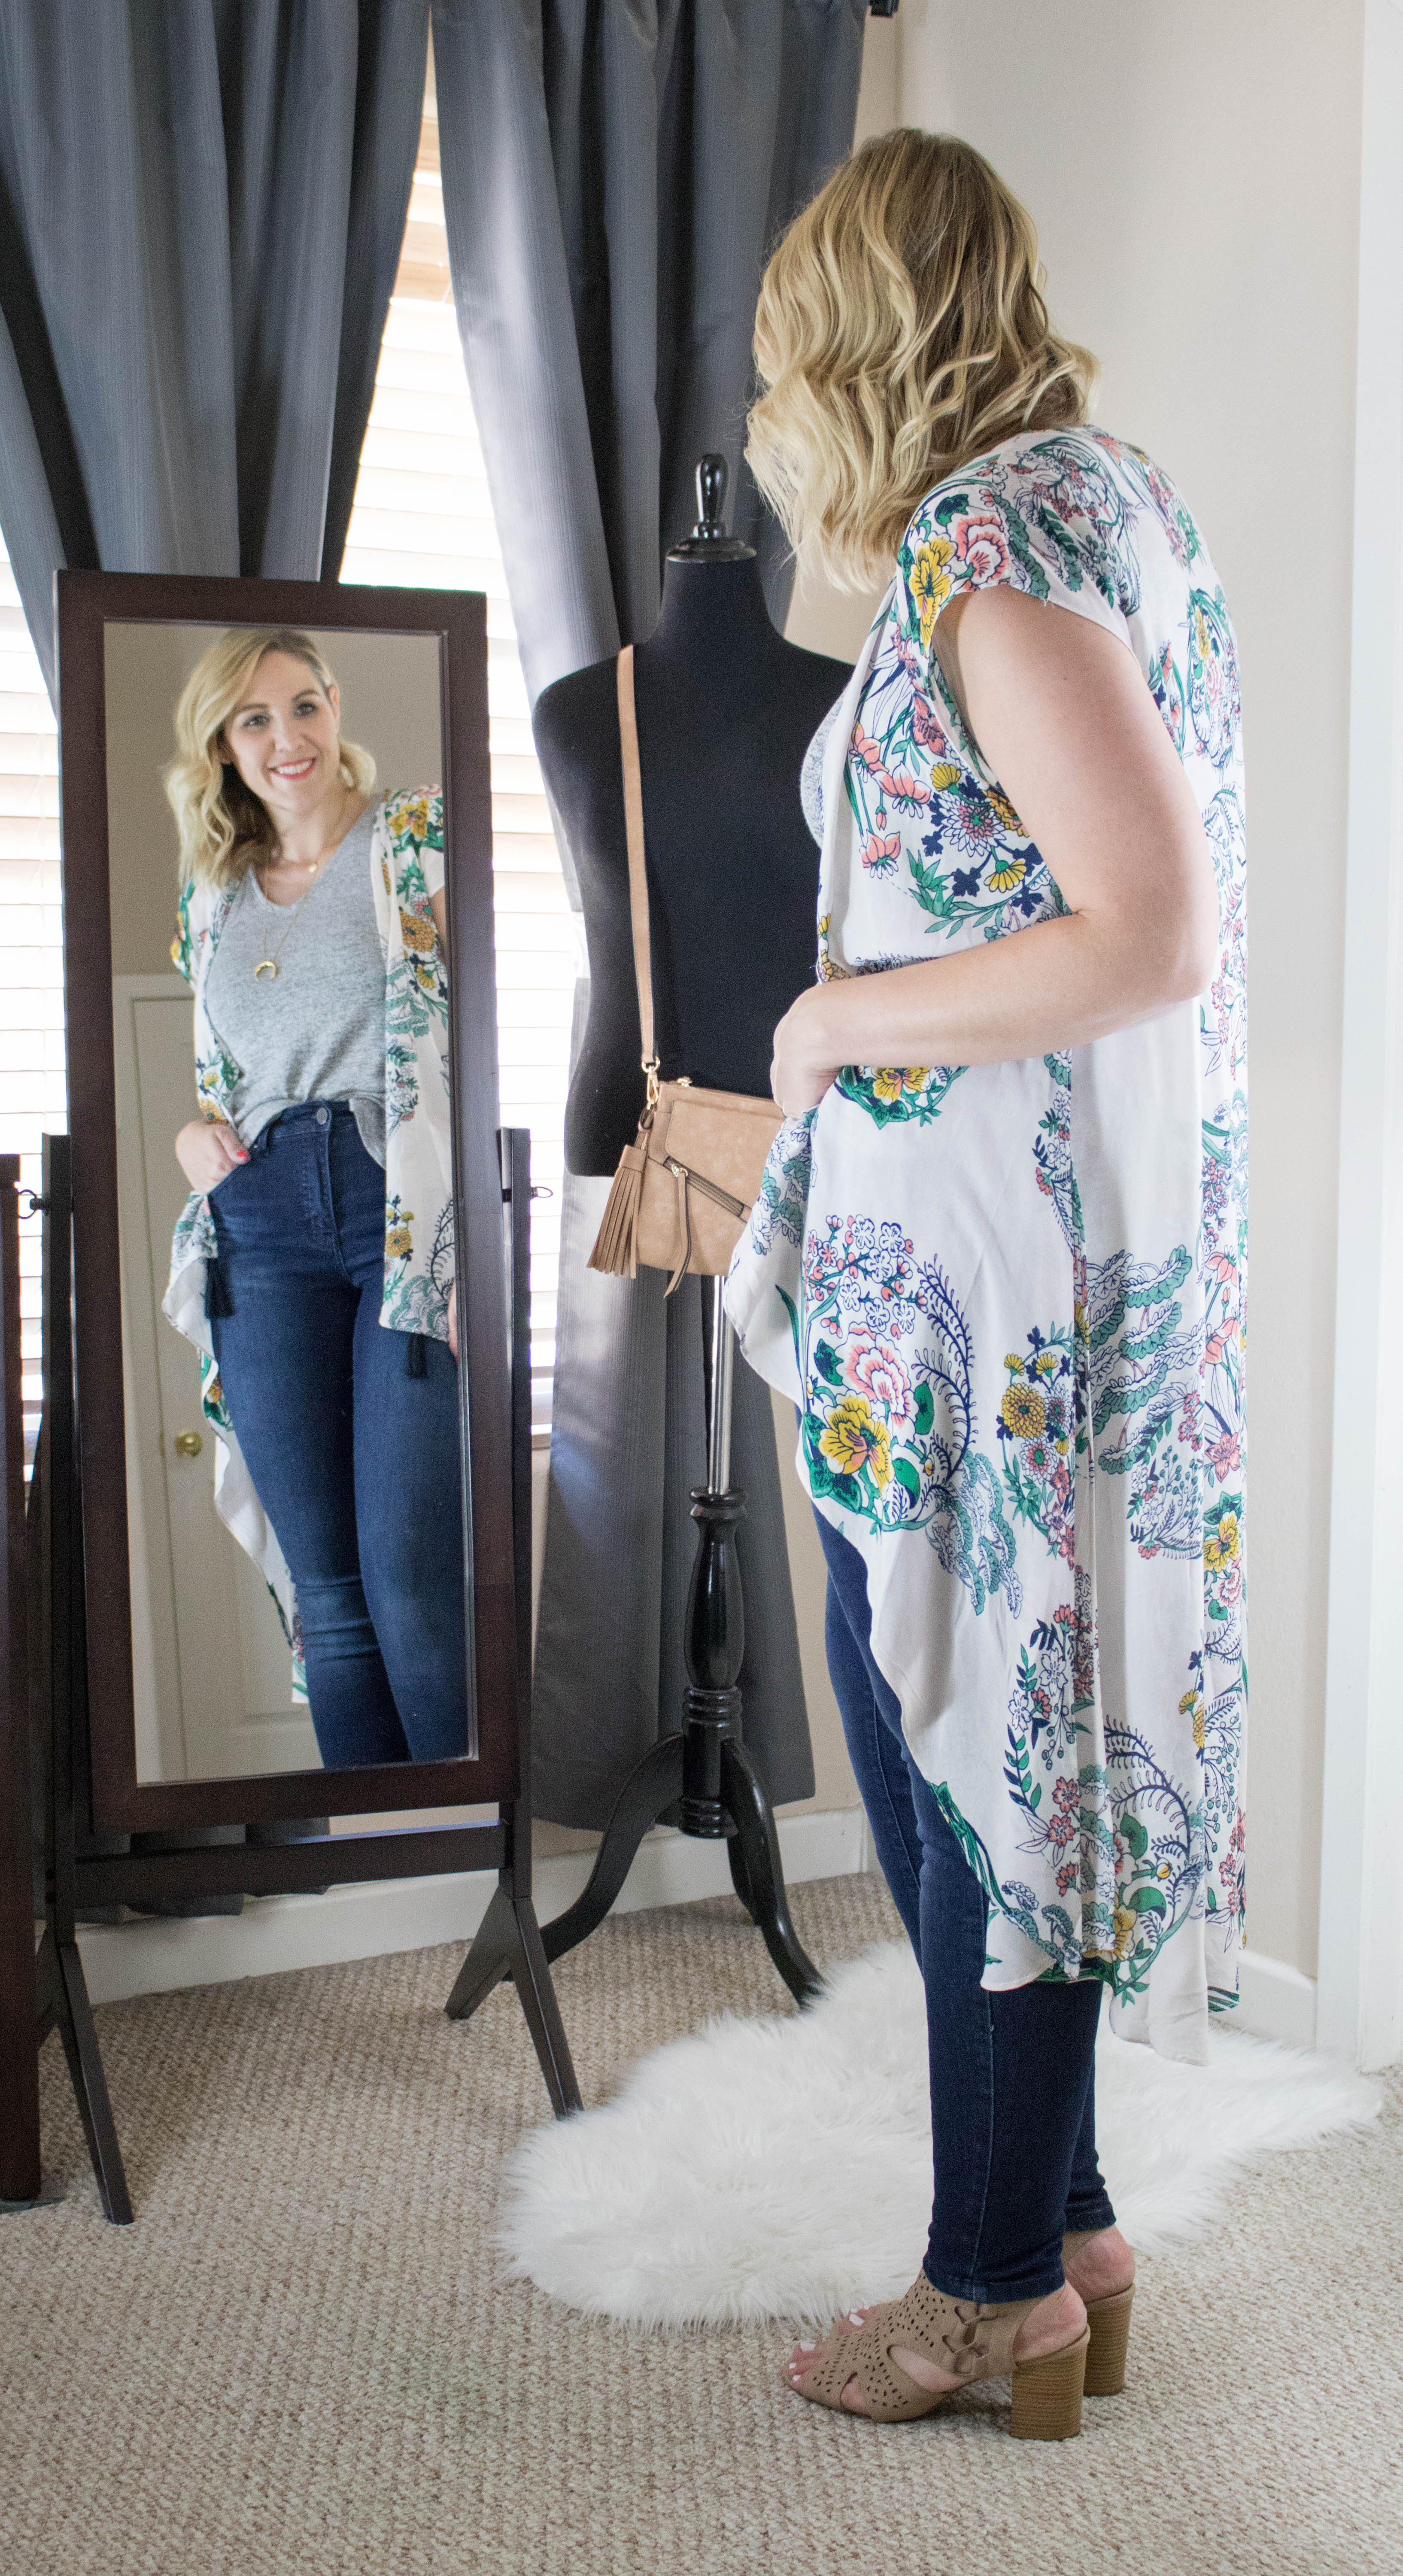 perfect pair of jeans maurices #denim #jeansoutfit #highrisejeans #maurices